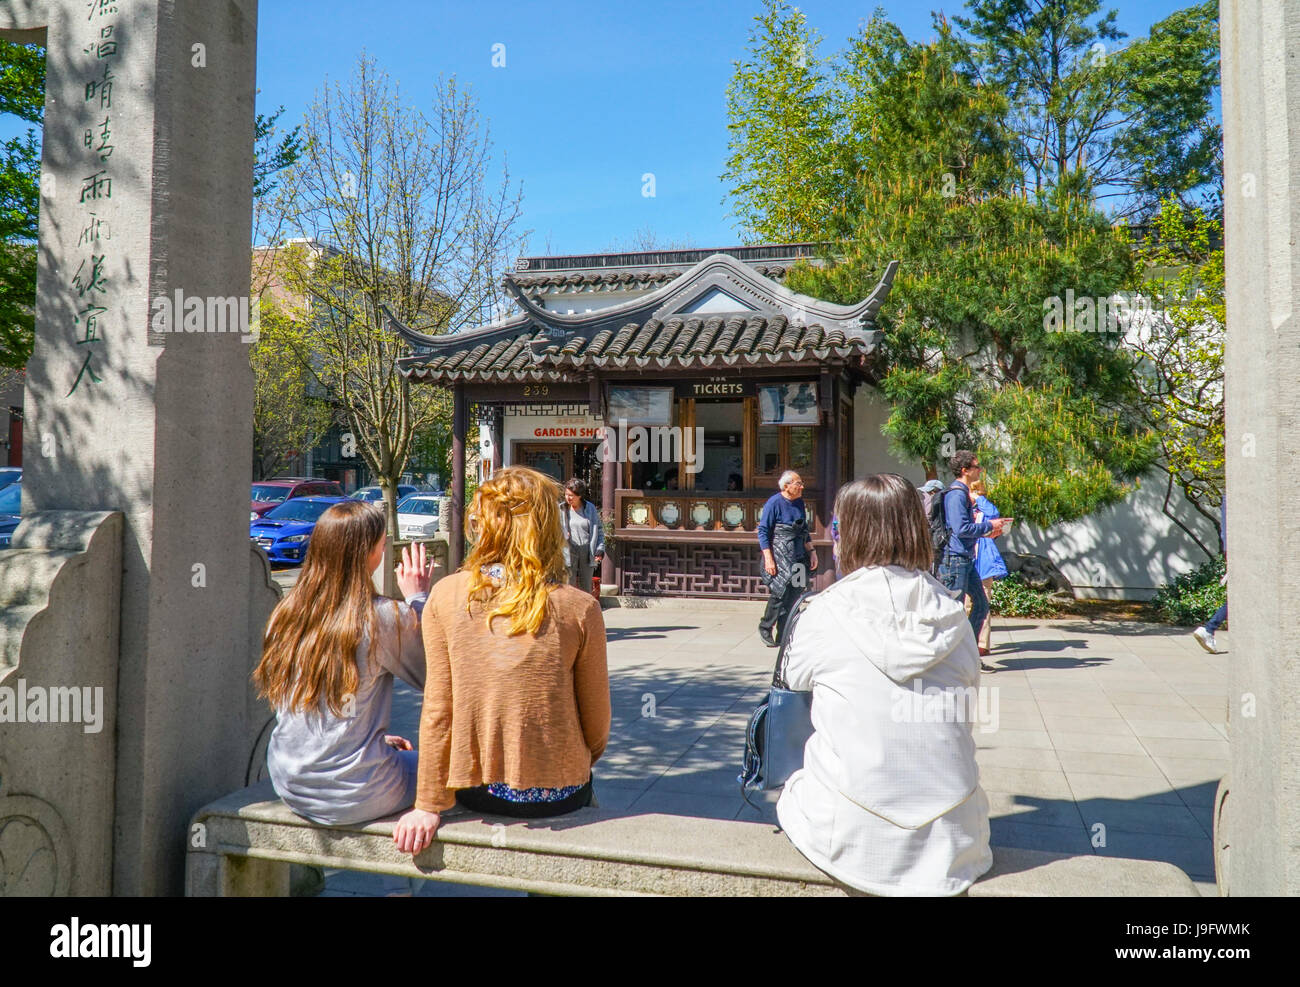 Ticket sales booth at Chinese Garden in Portland - PORTLAND - OREGON - APRIL 16, 2017 Stock Photo